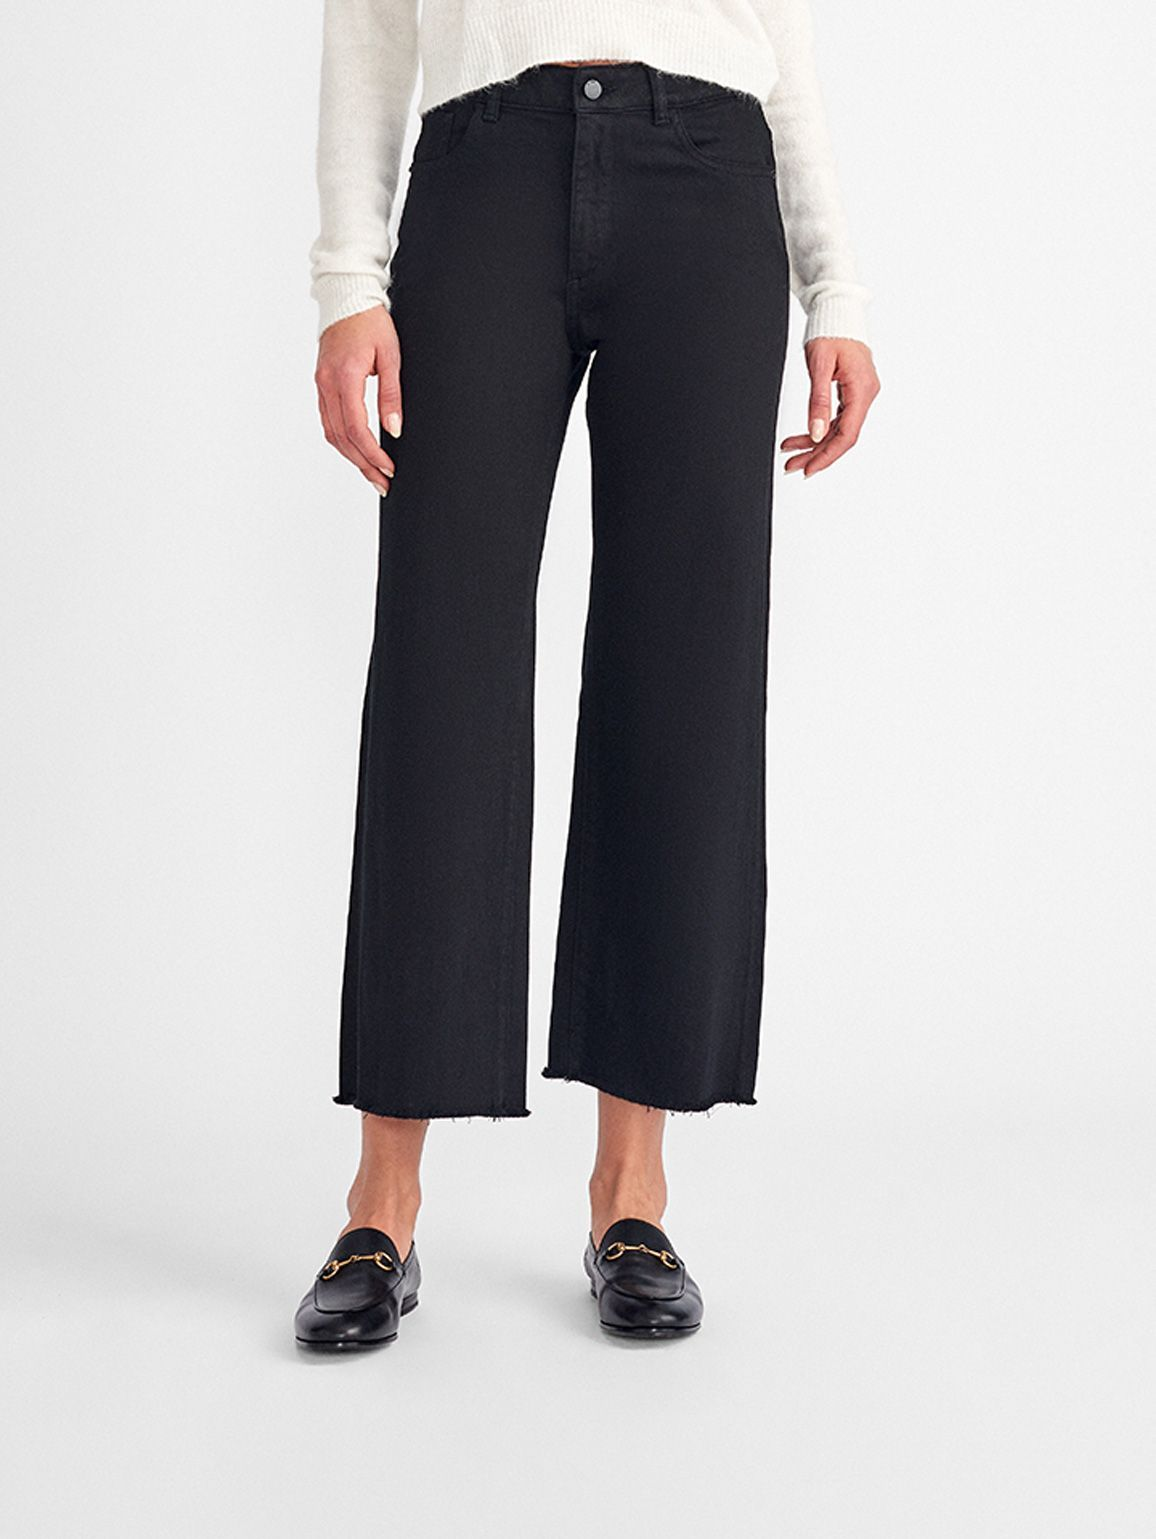 Hepburn High Rise Wide Leg | Ashwell